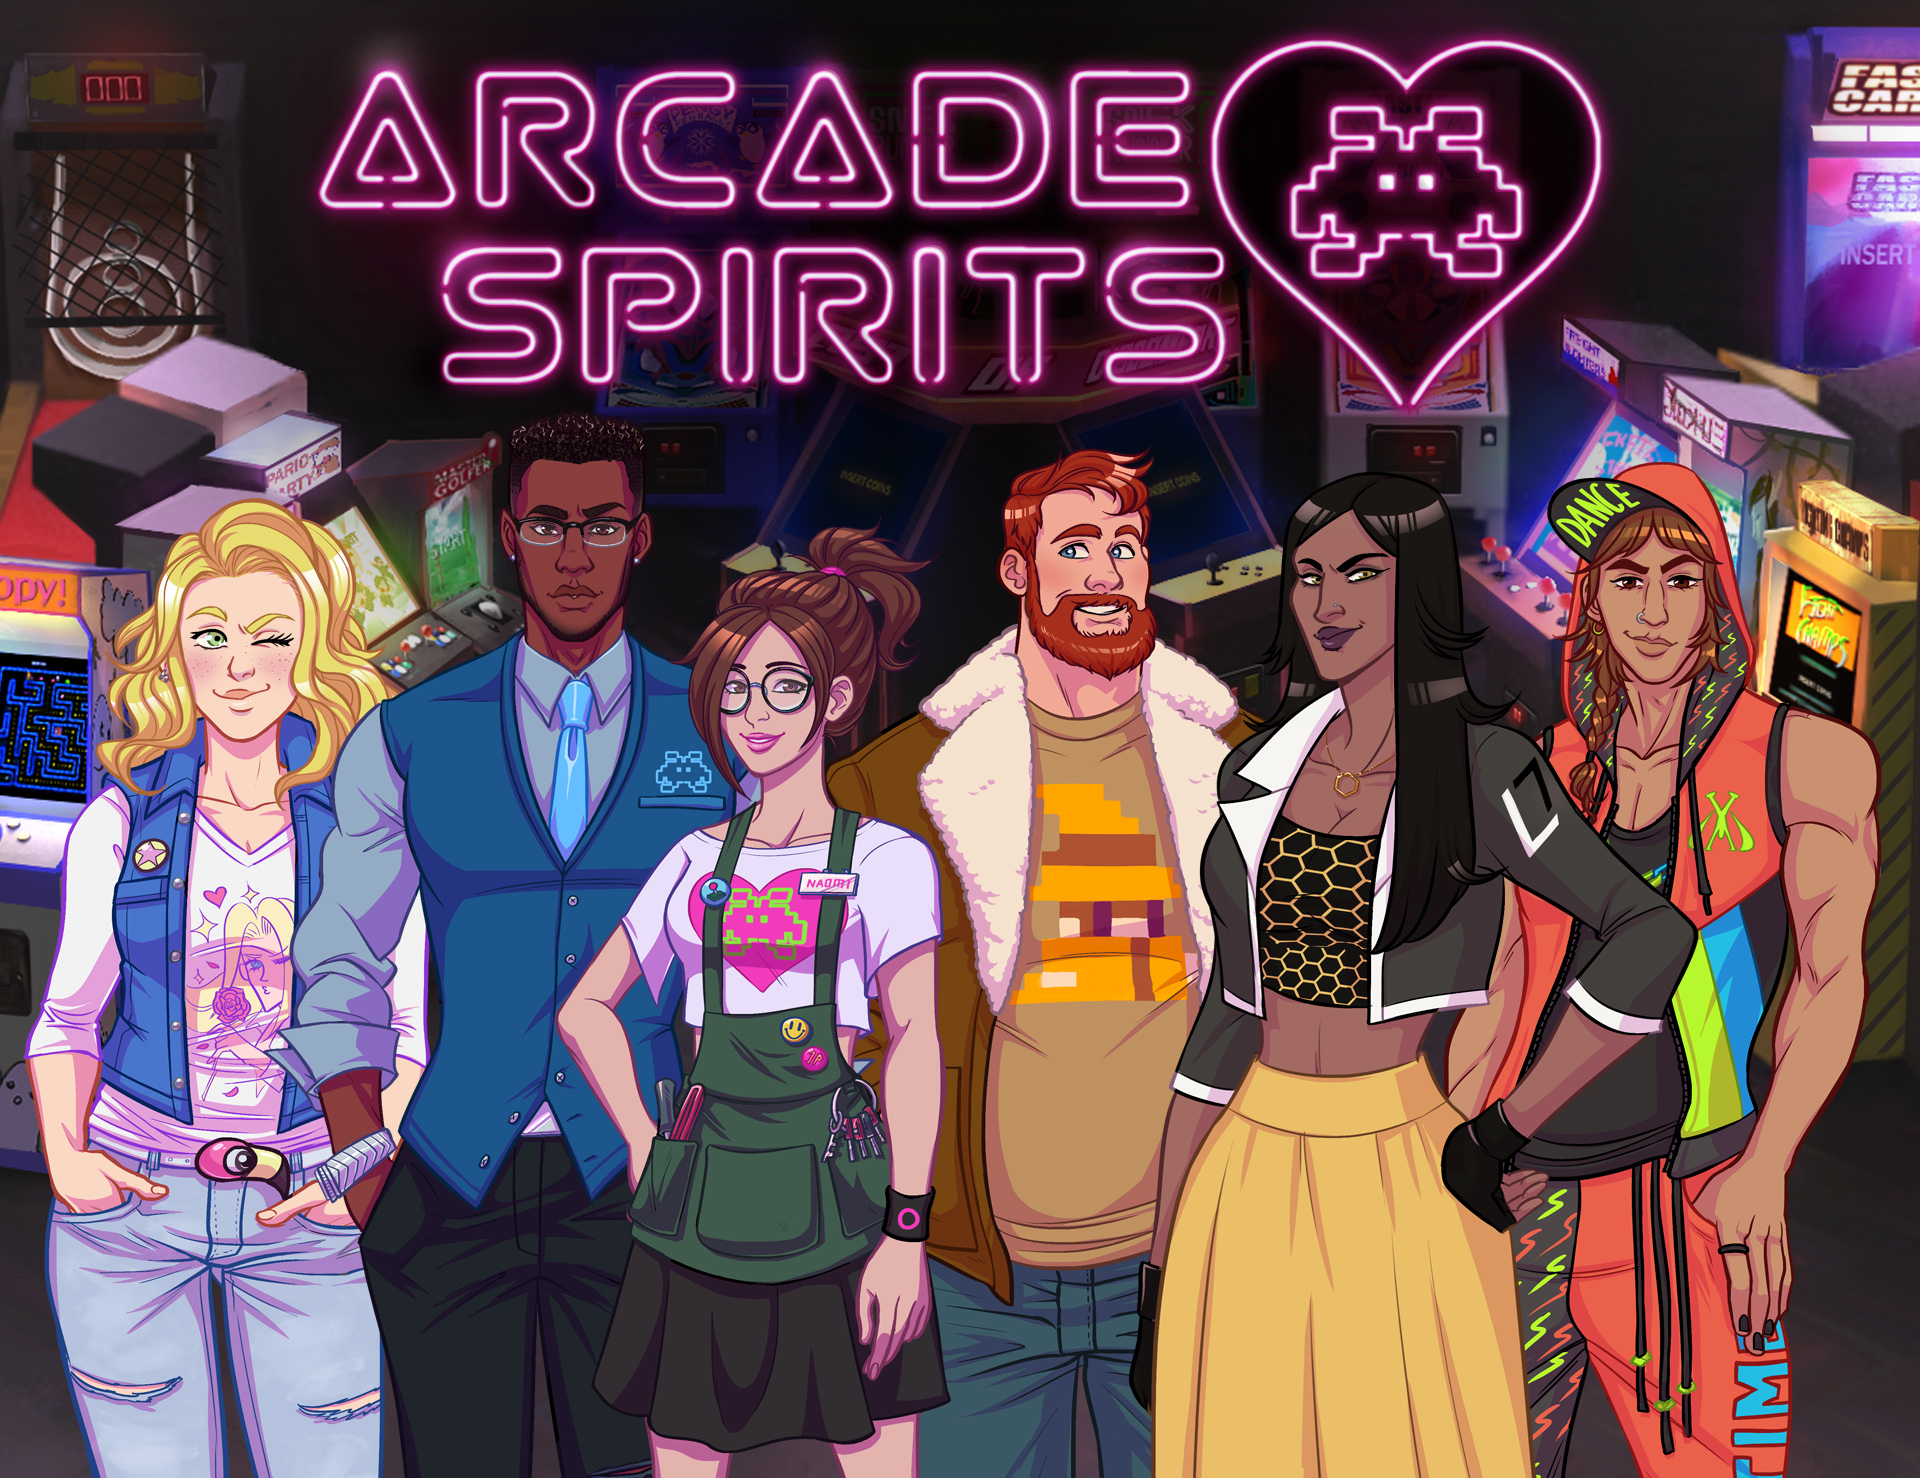 Arcade Spirits Is Making Its Way Onto Xbox One, PlayStation 4, And The Nintendo Switch This May,